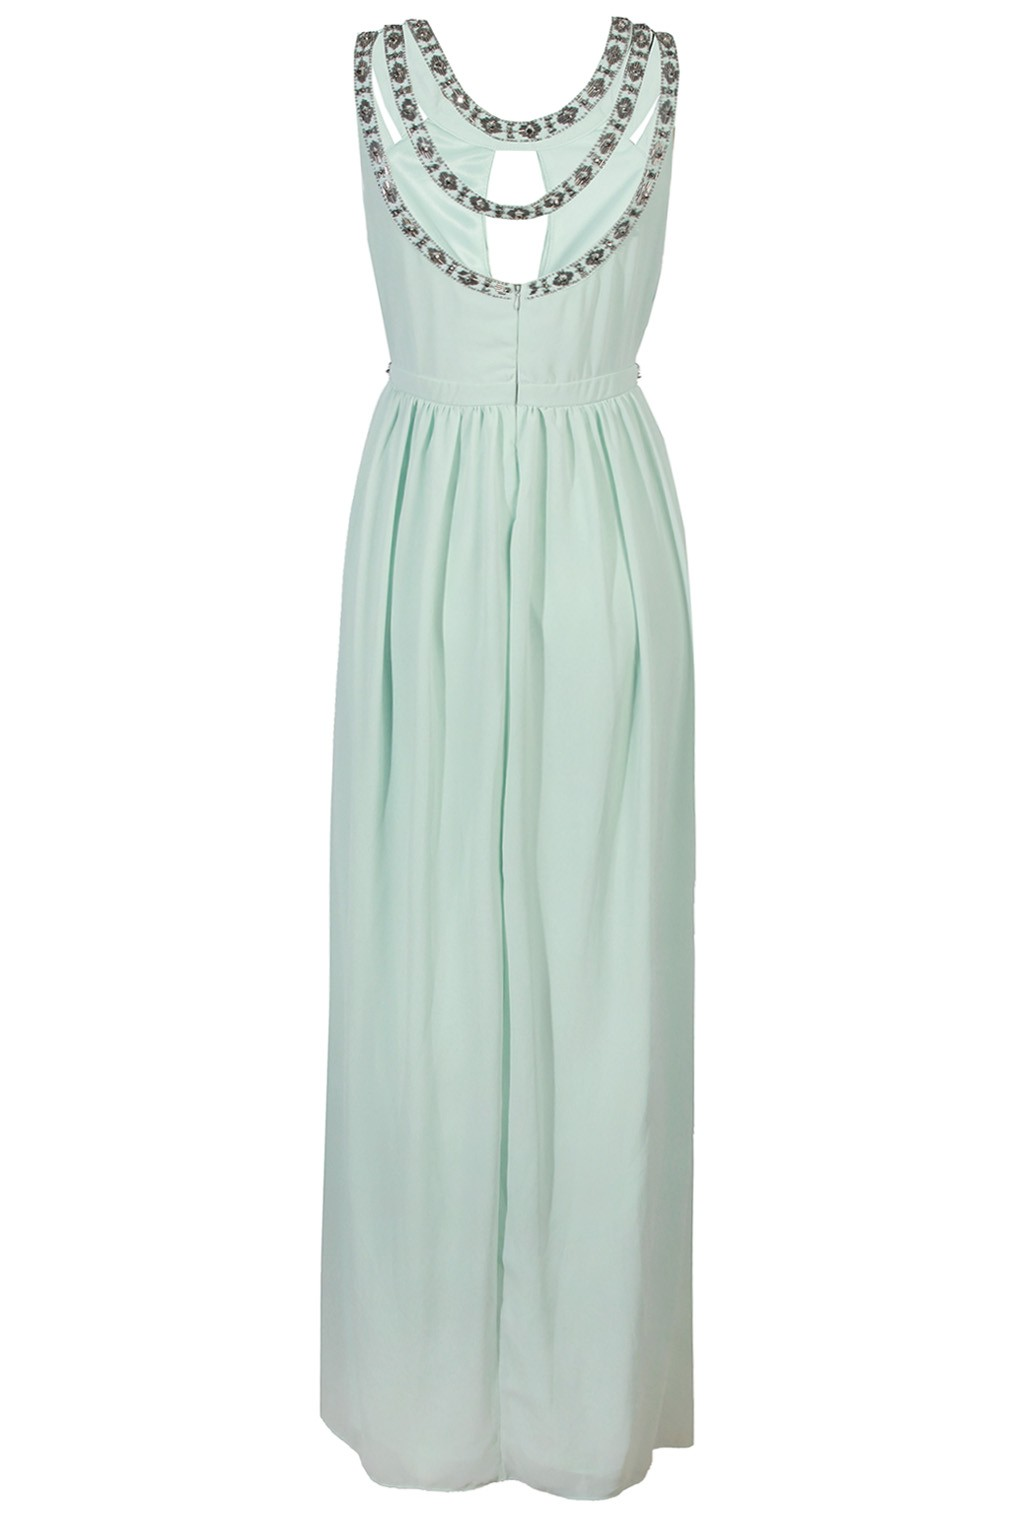 TFNC RIO MINT MAXI EMBELLISHED DRESS | TFNC PARTY DRESSES